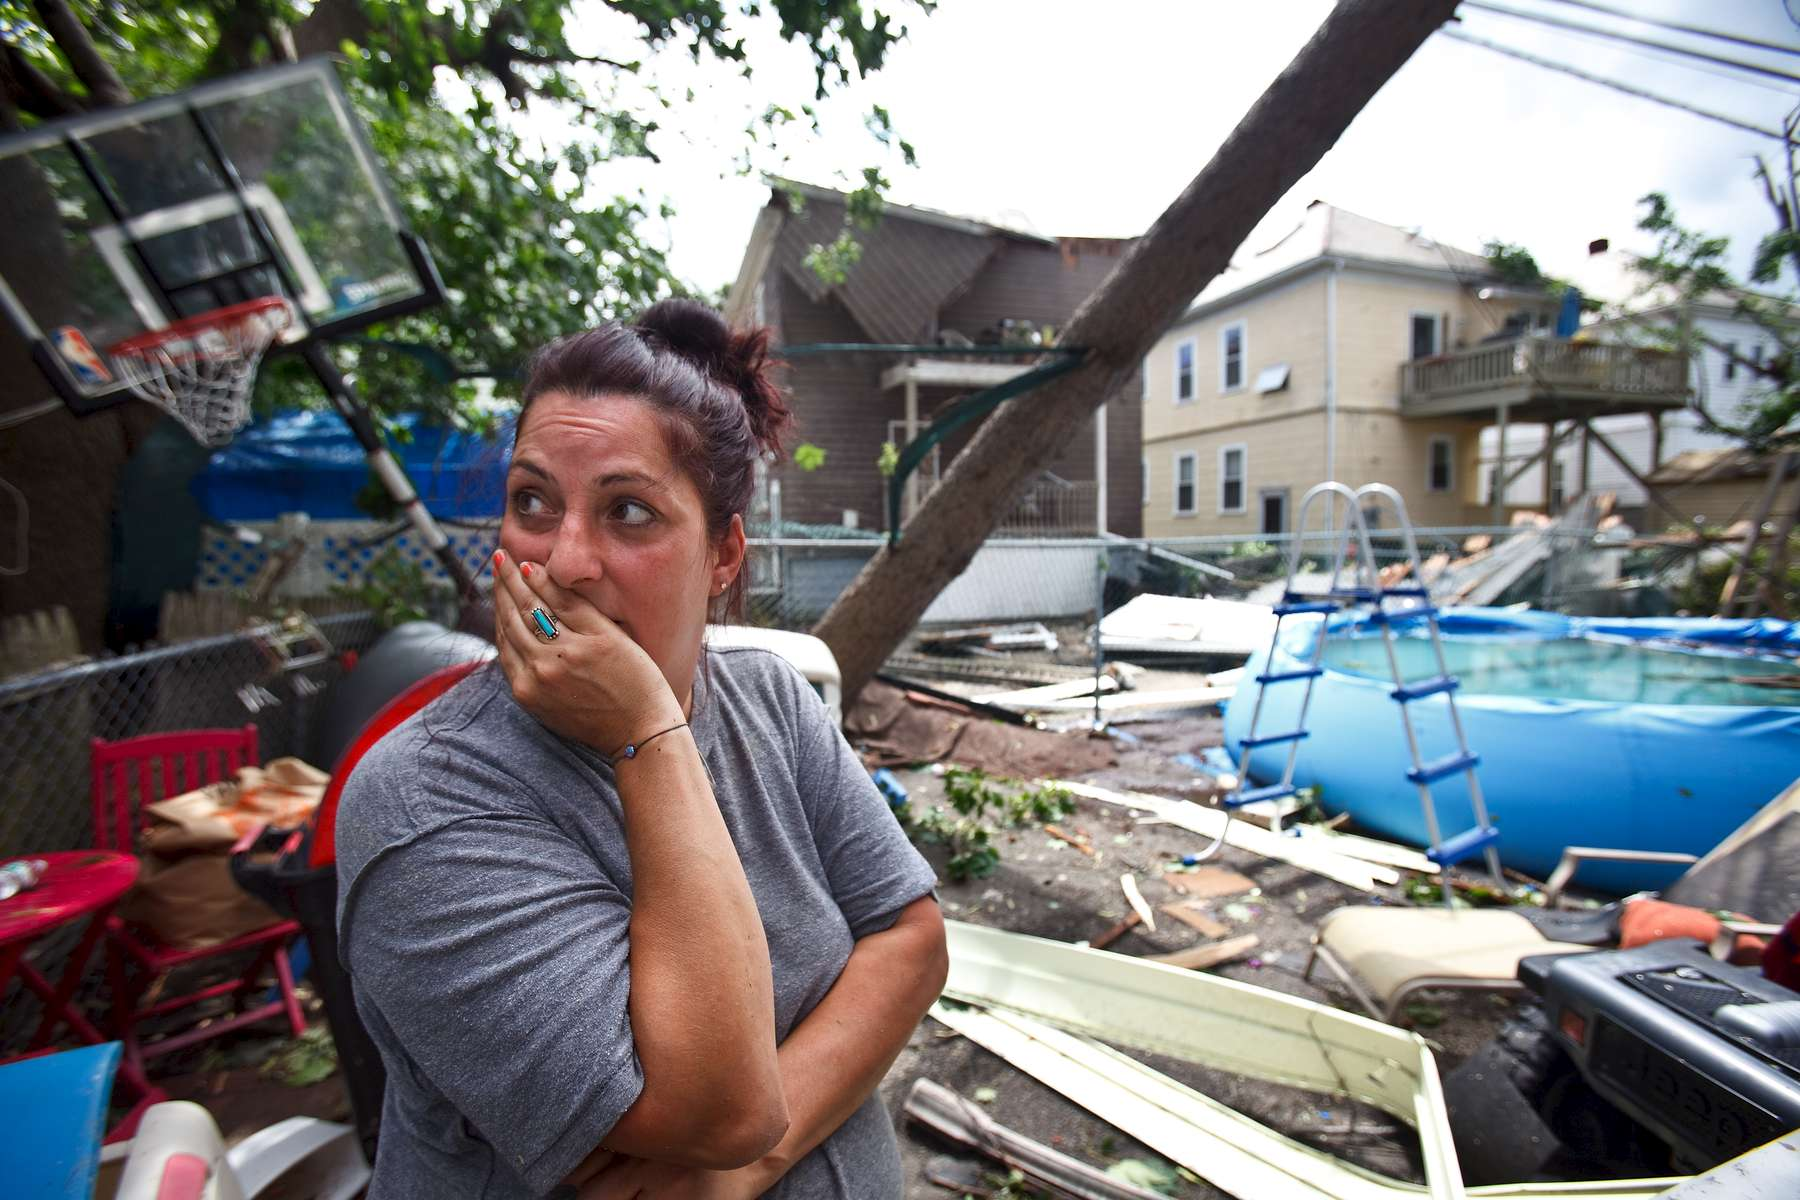 7/28/14 - Revere, MA - Barbara Cardone, cq, surveys the damage done to her formerly orderly back yard on Taft Street. A tornado ripped through Revere, MA on Monday morning, July 28, 2014. Item: 29weather. Dina Rudick/Globe Staff